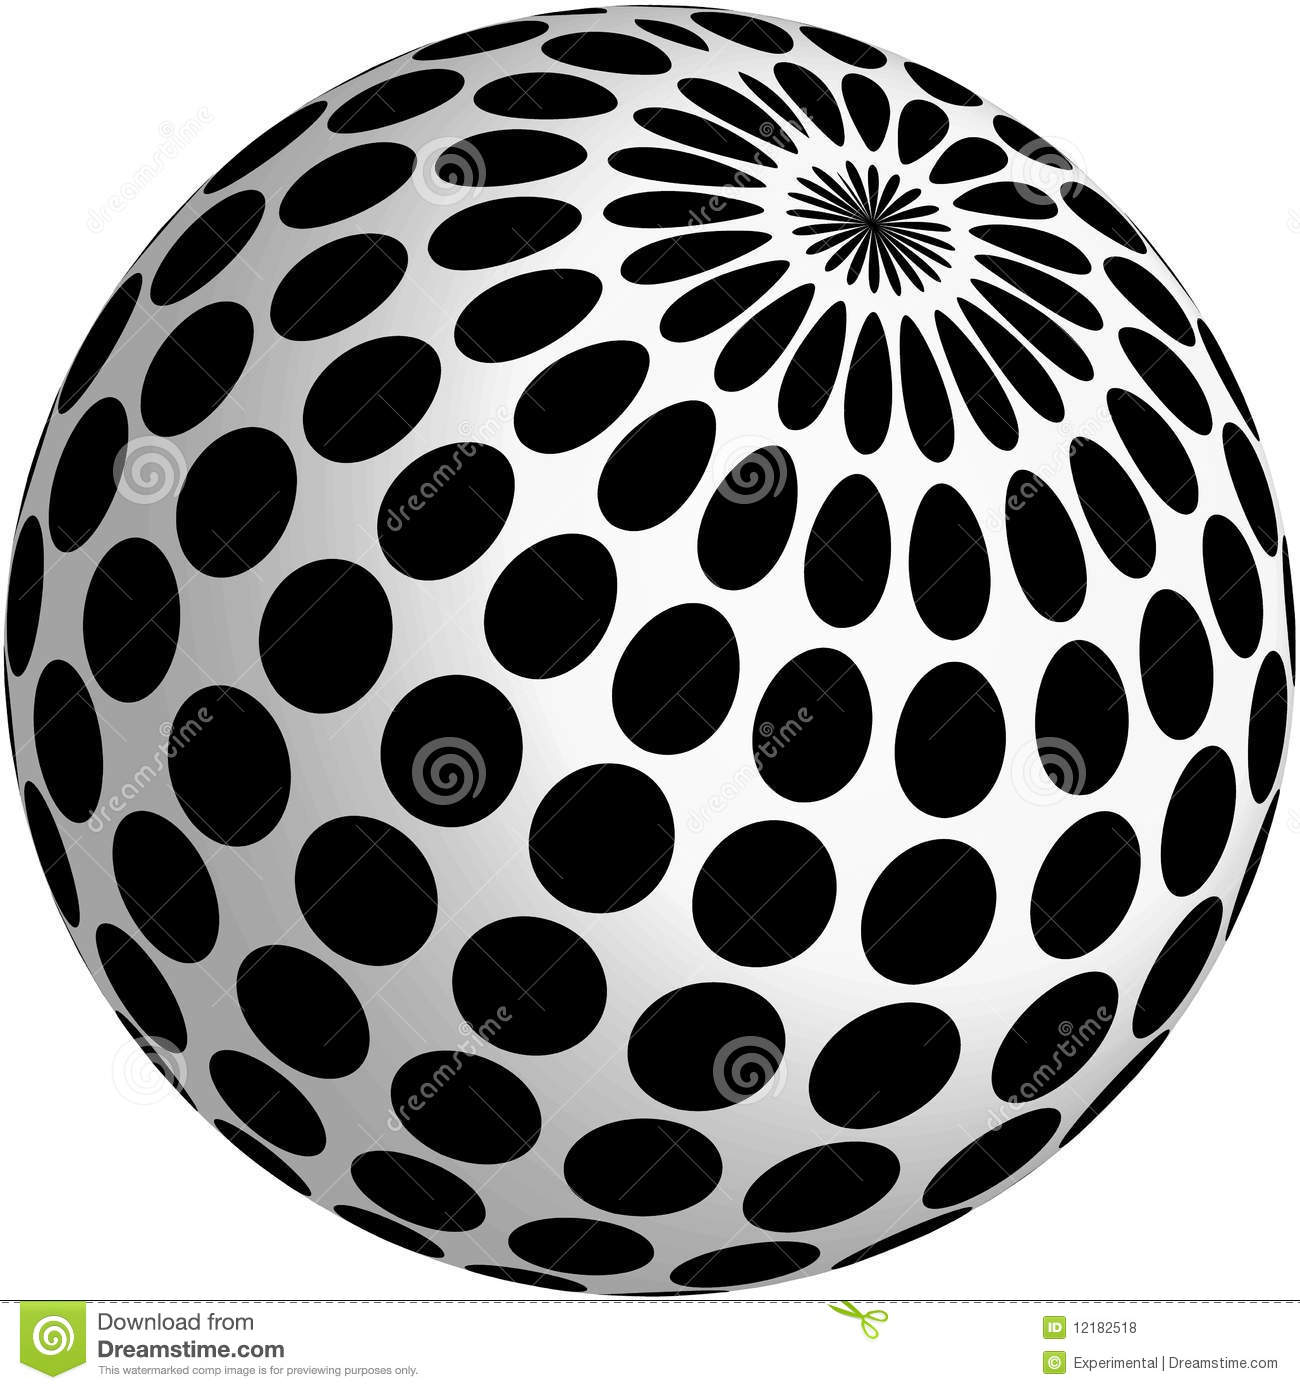 3d ball design with black dots stock illustration for 3d design free